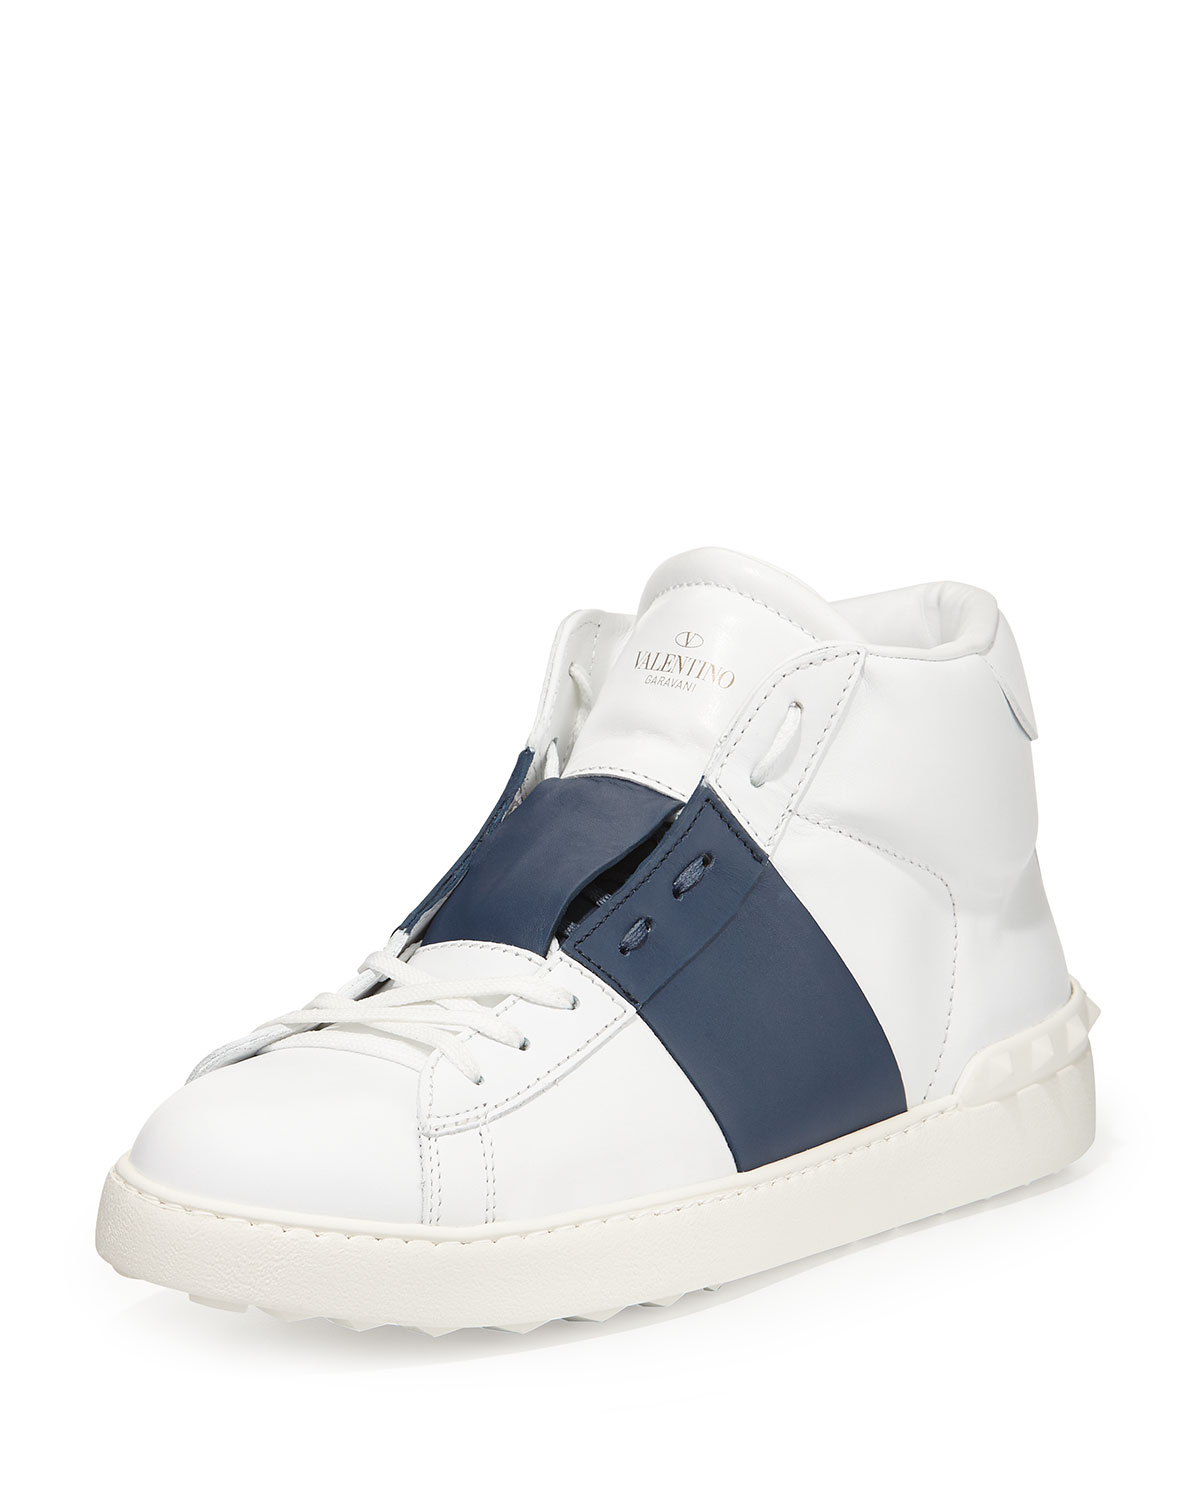 sports shoes 249c1 1f4ae valentino-white-rockstud-leather-high-top-sneaker-product-1-24292810-2-270841751-normal.jpeg